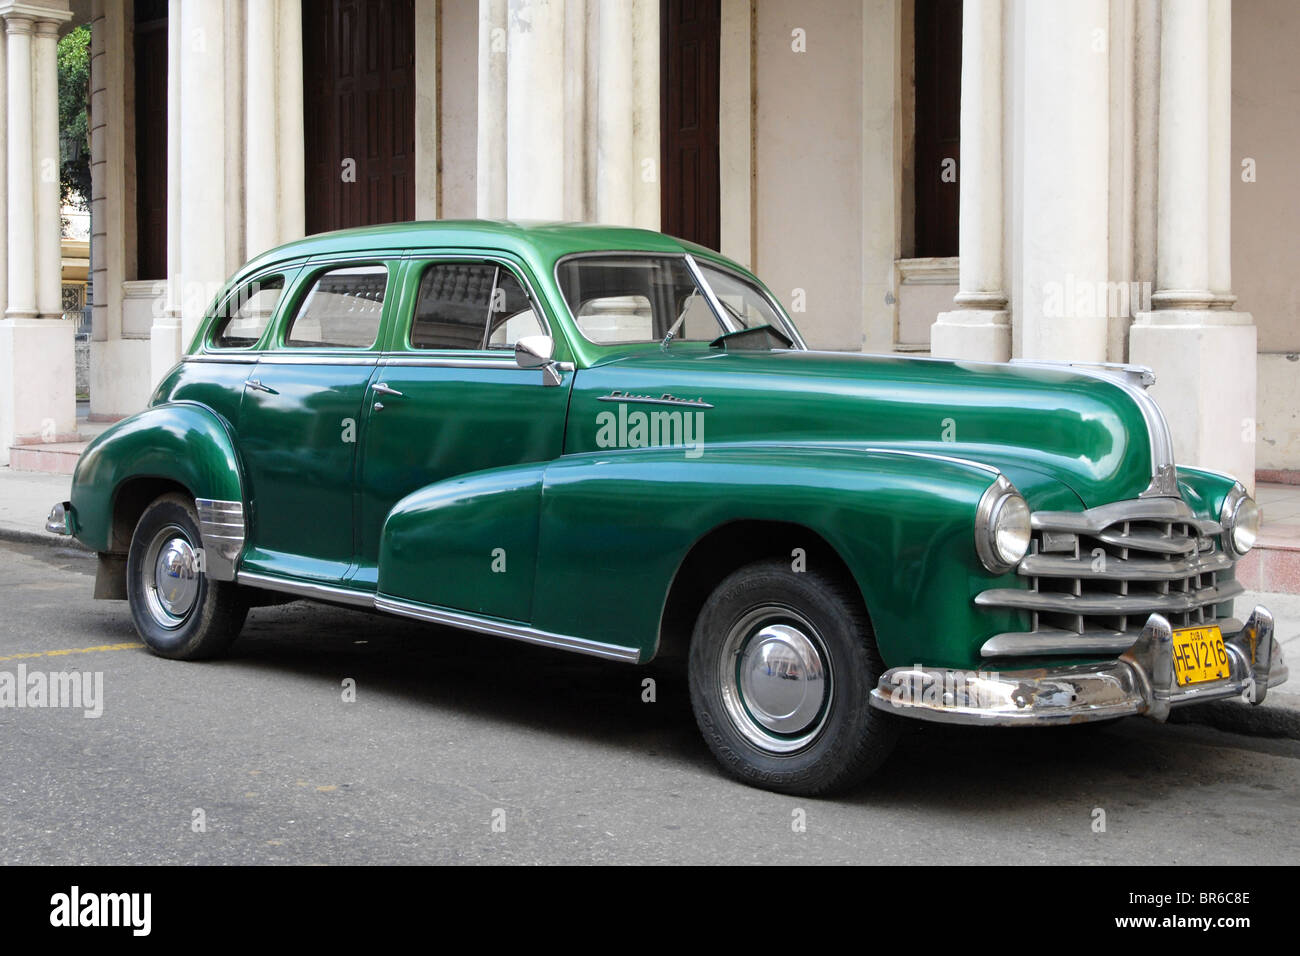 Silver Streak Stock Photos Images Alamy 1941 Pontiac A Green Classic Car Parked In Havana Cuba Image